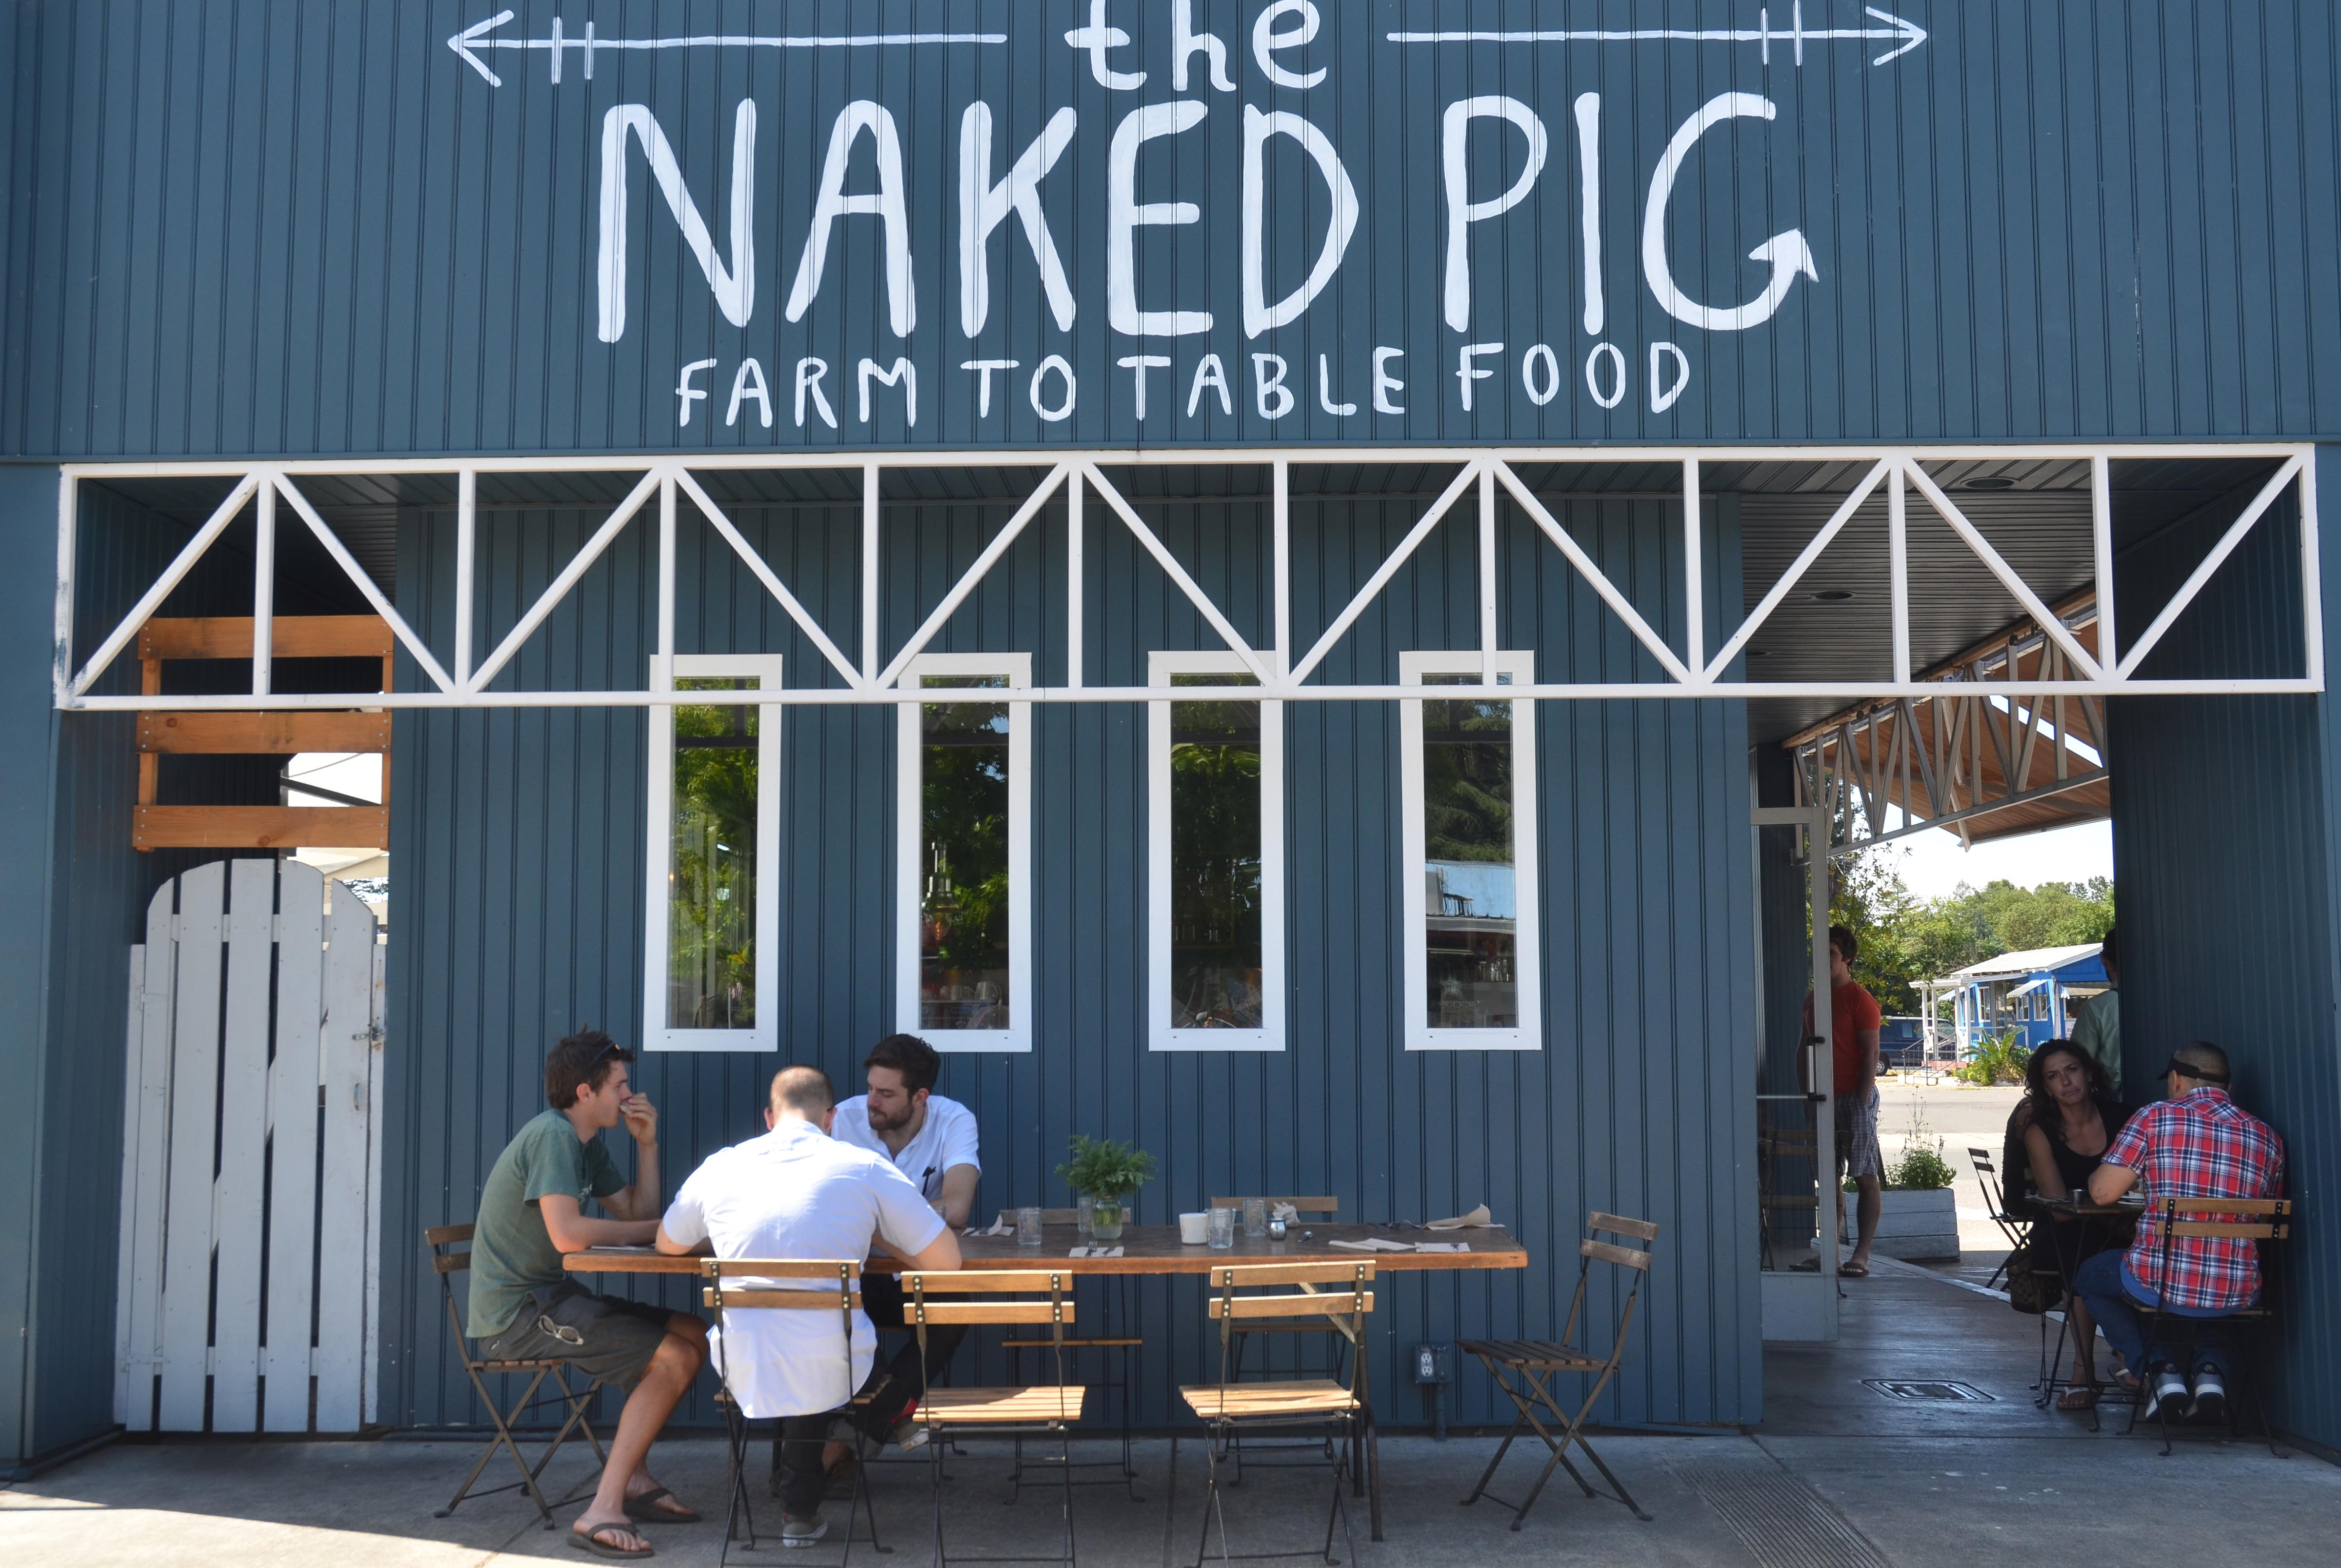 Glorious Community, Delicious Food at The Naked Pig